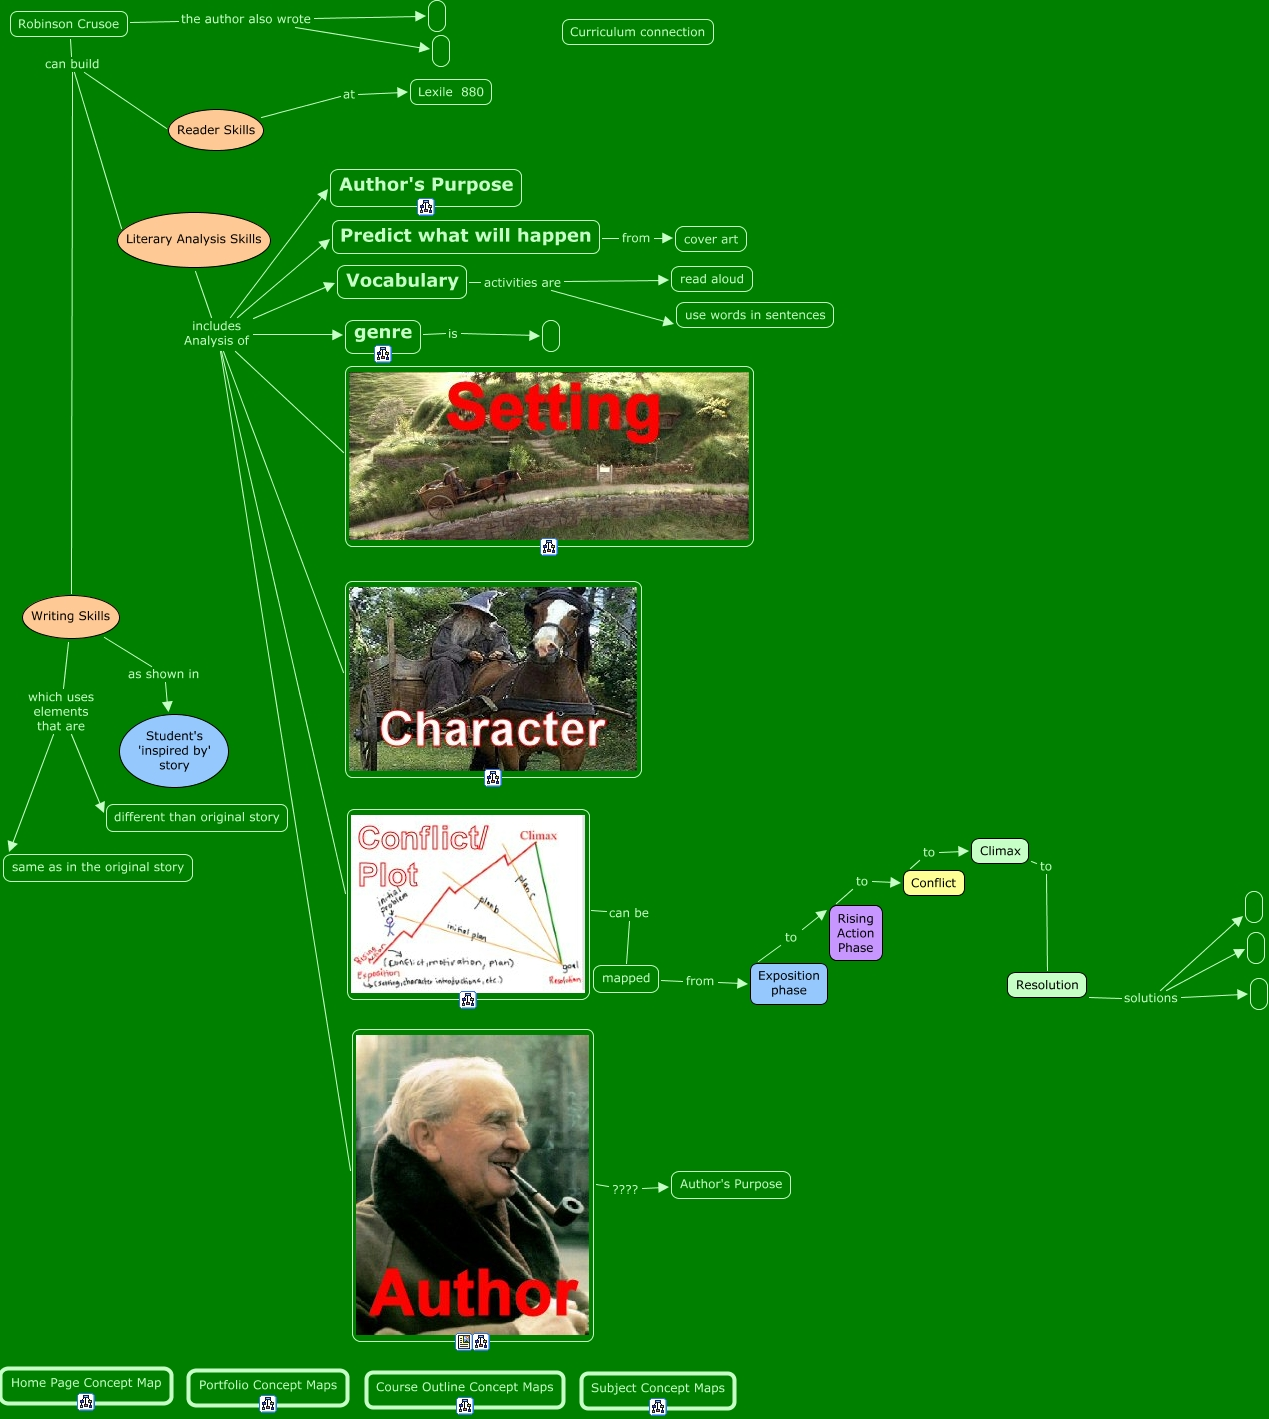 robinson crusoe cmap rid gdpzgpr kdkr mw part htmljpeg robinson crusoe robinson crusoe the author also wrote rising action phase to conflict author s purpose